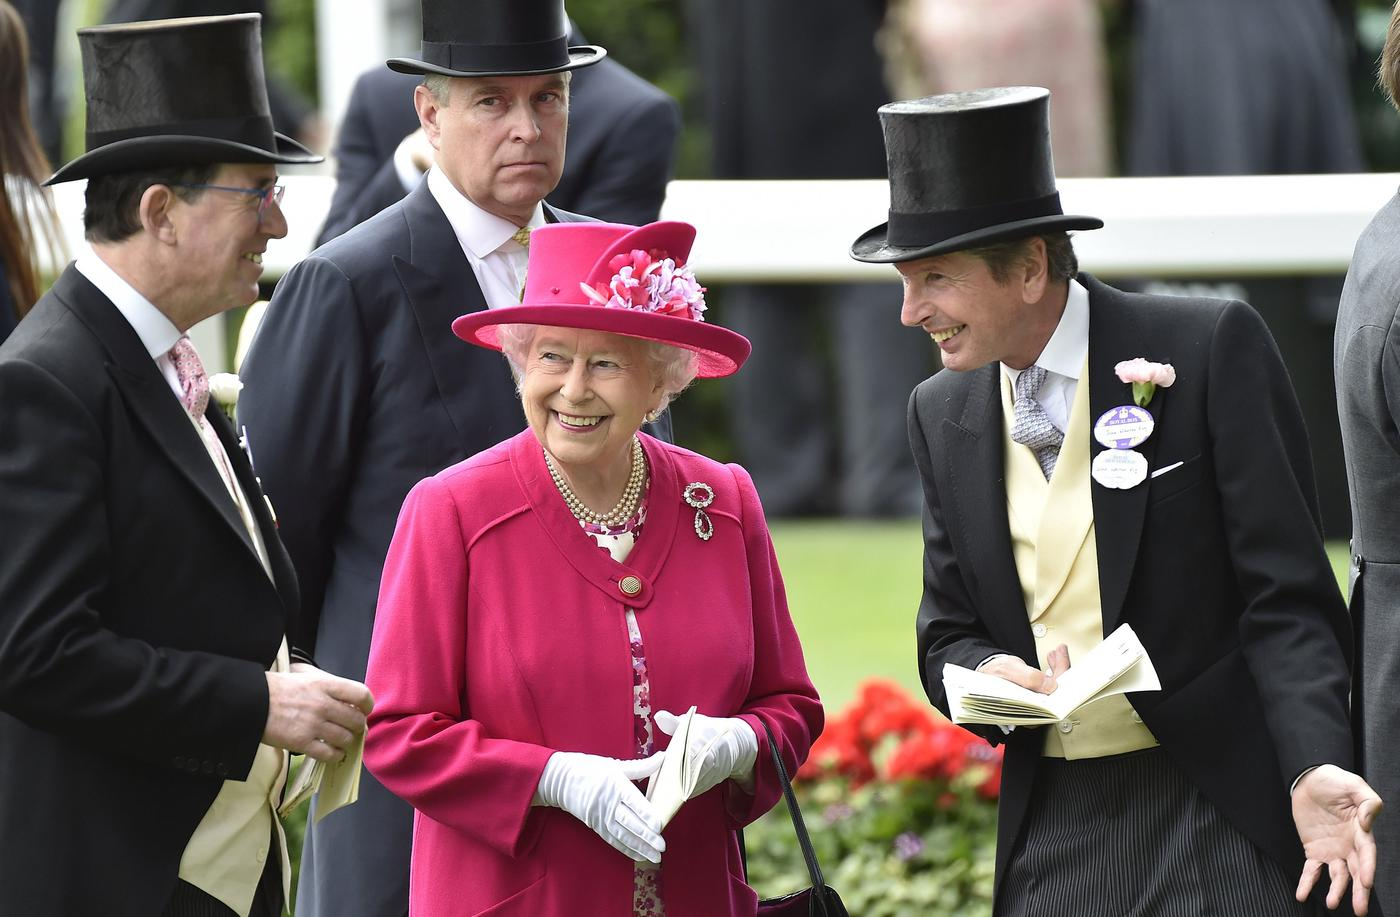 Royal Ascot 2015: Racegoers and Royal Family turn out for first day